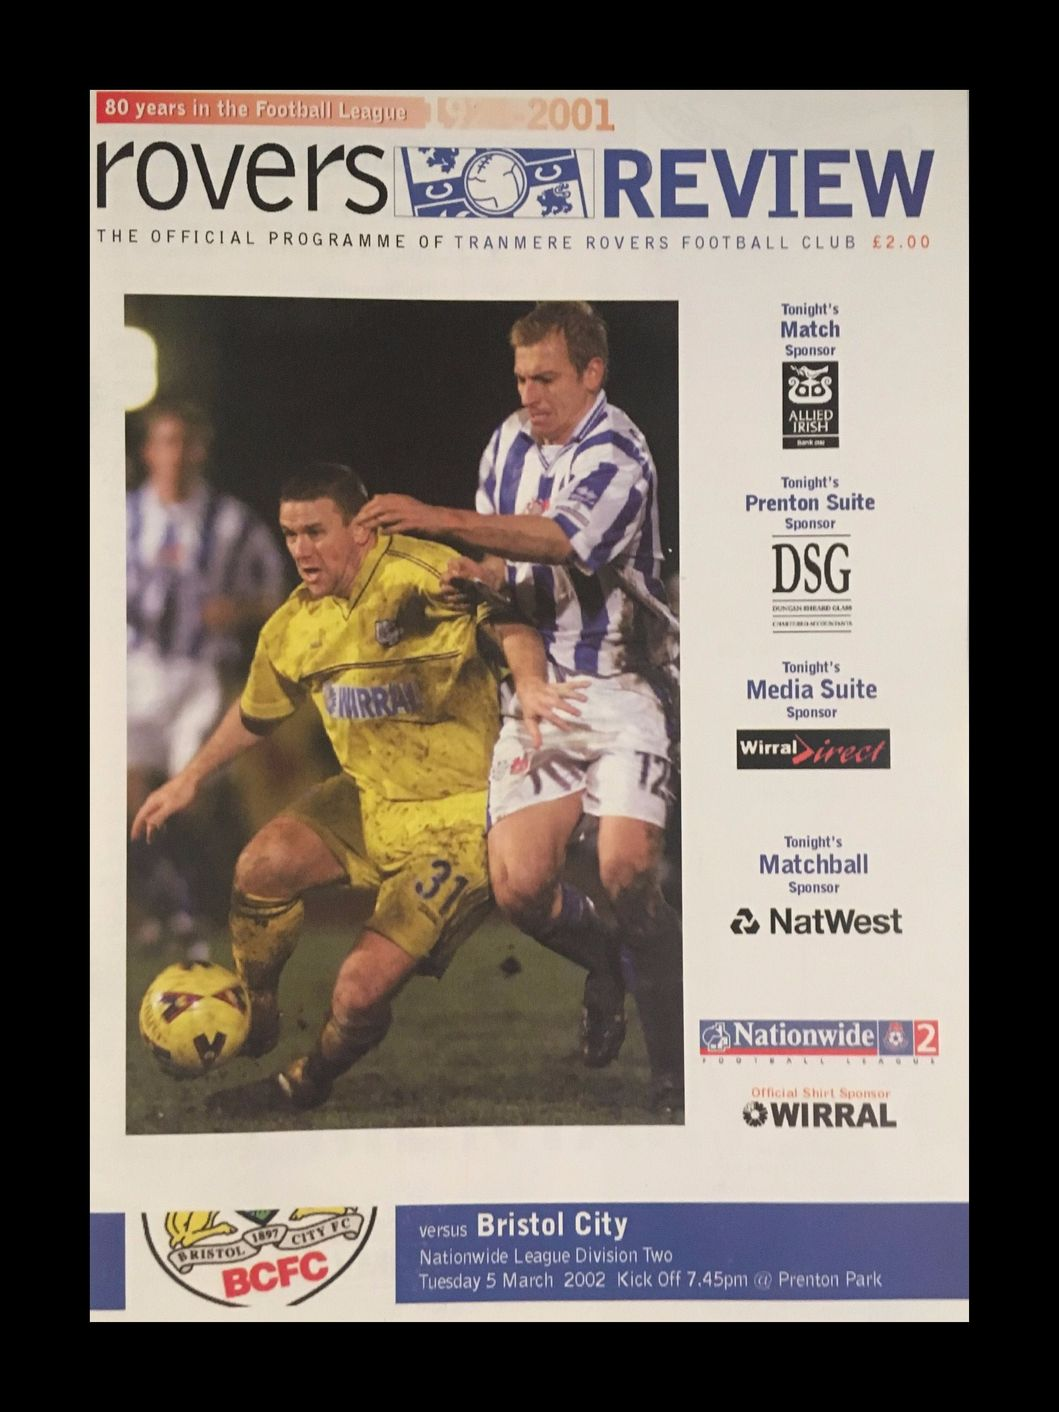 Tranmere Rovers v Bristol City 05-03-2002 Programme